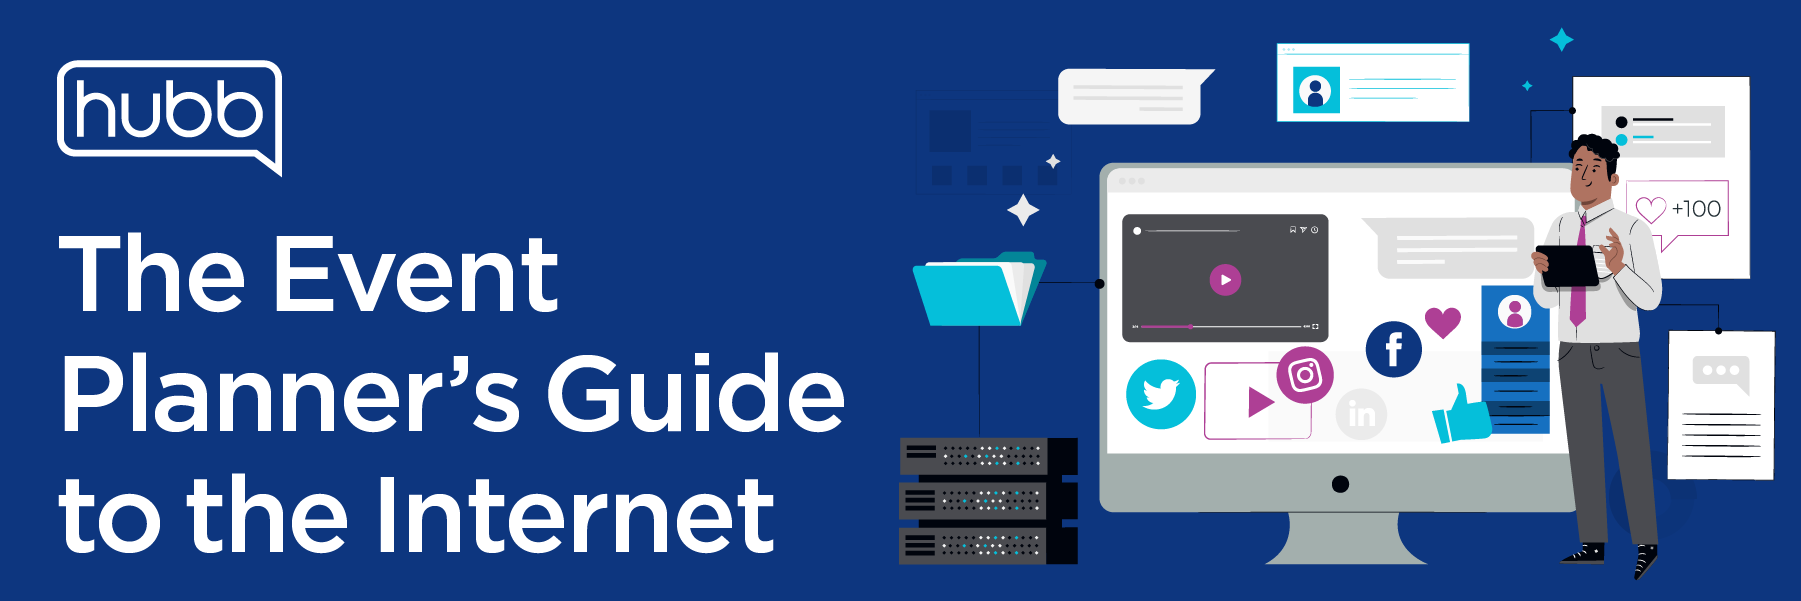 EventPlanners-Guide-to-the-Internet-Email